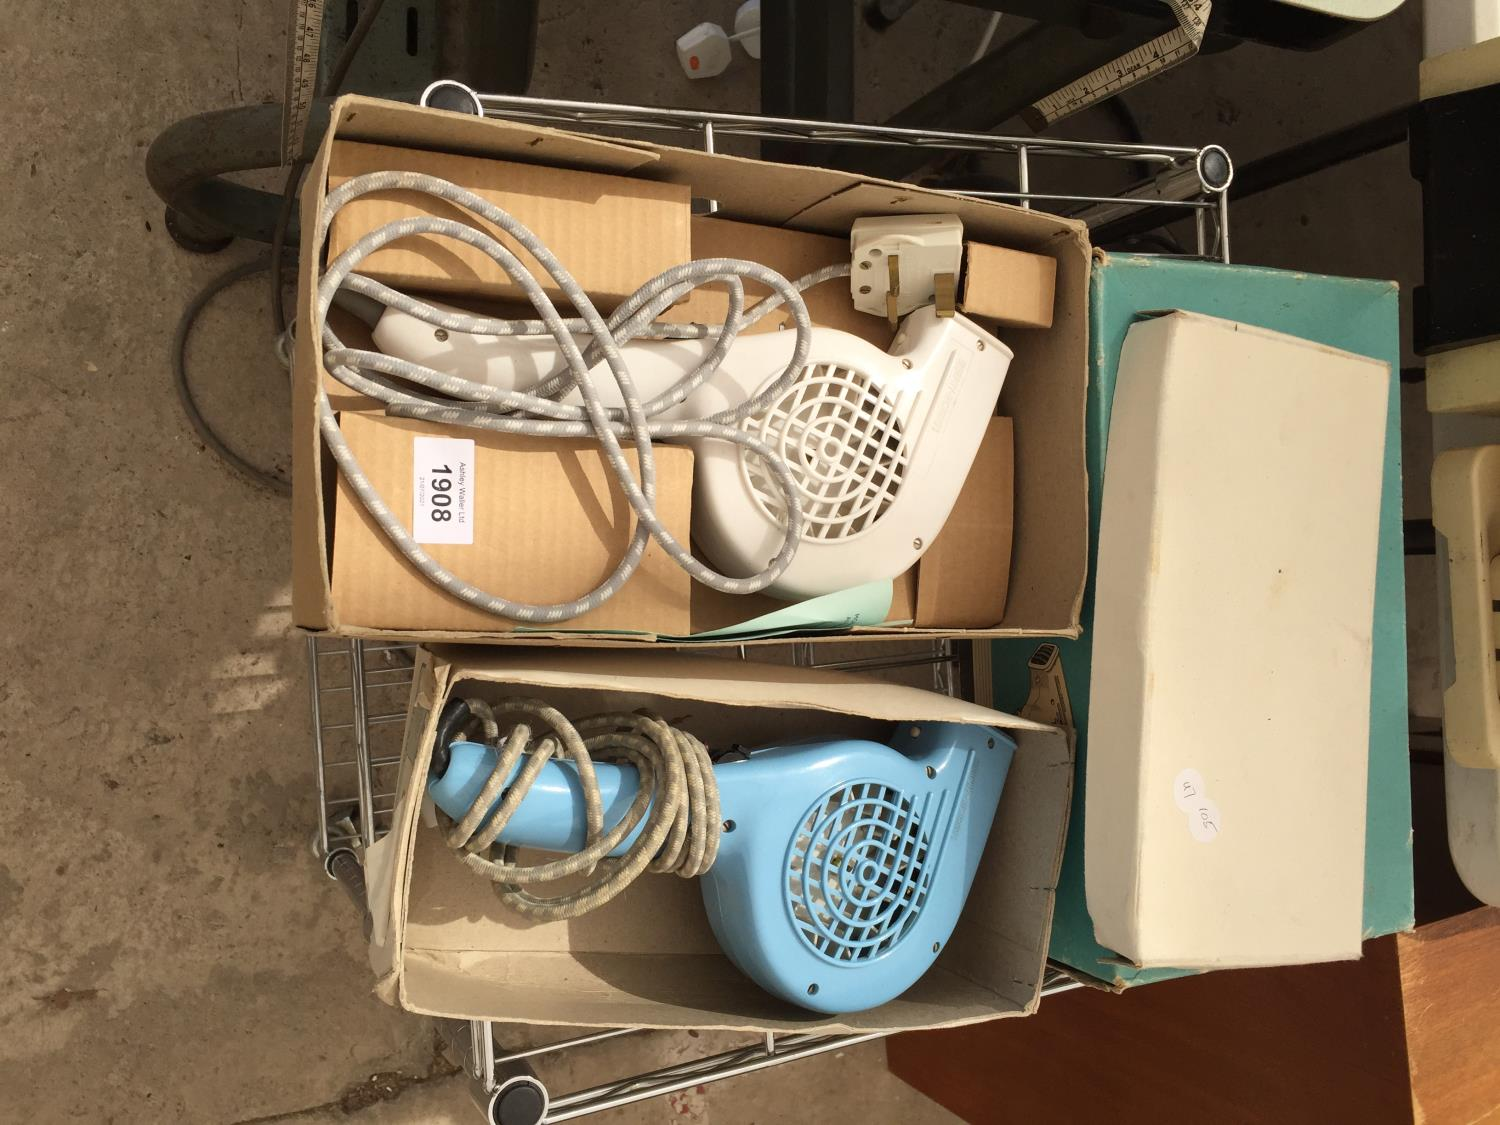 A PAIR OF VINTAGE/RETRO MORPHY RICHARDS HAIR DRYERS